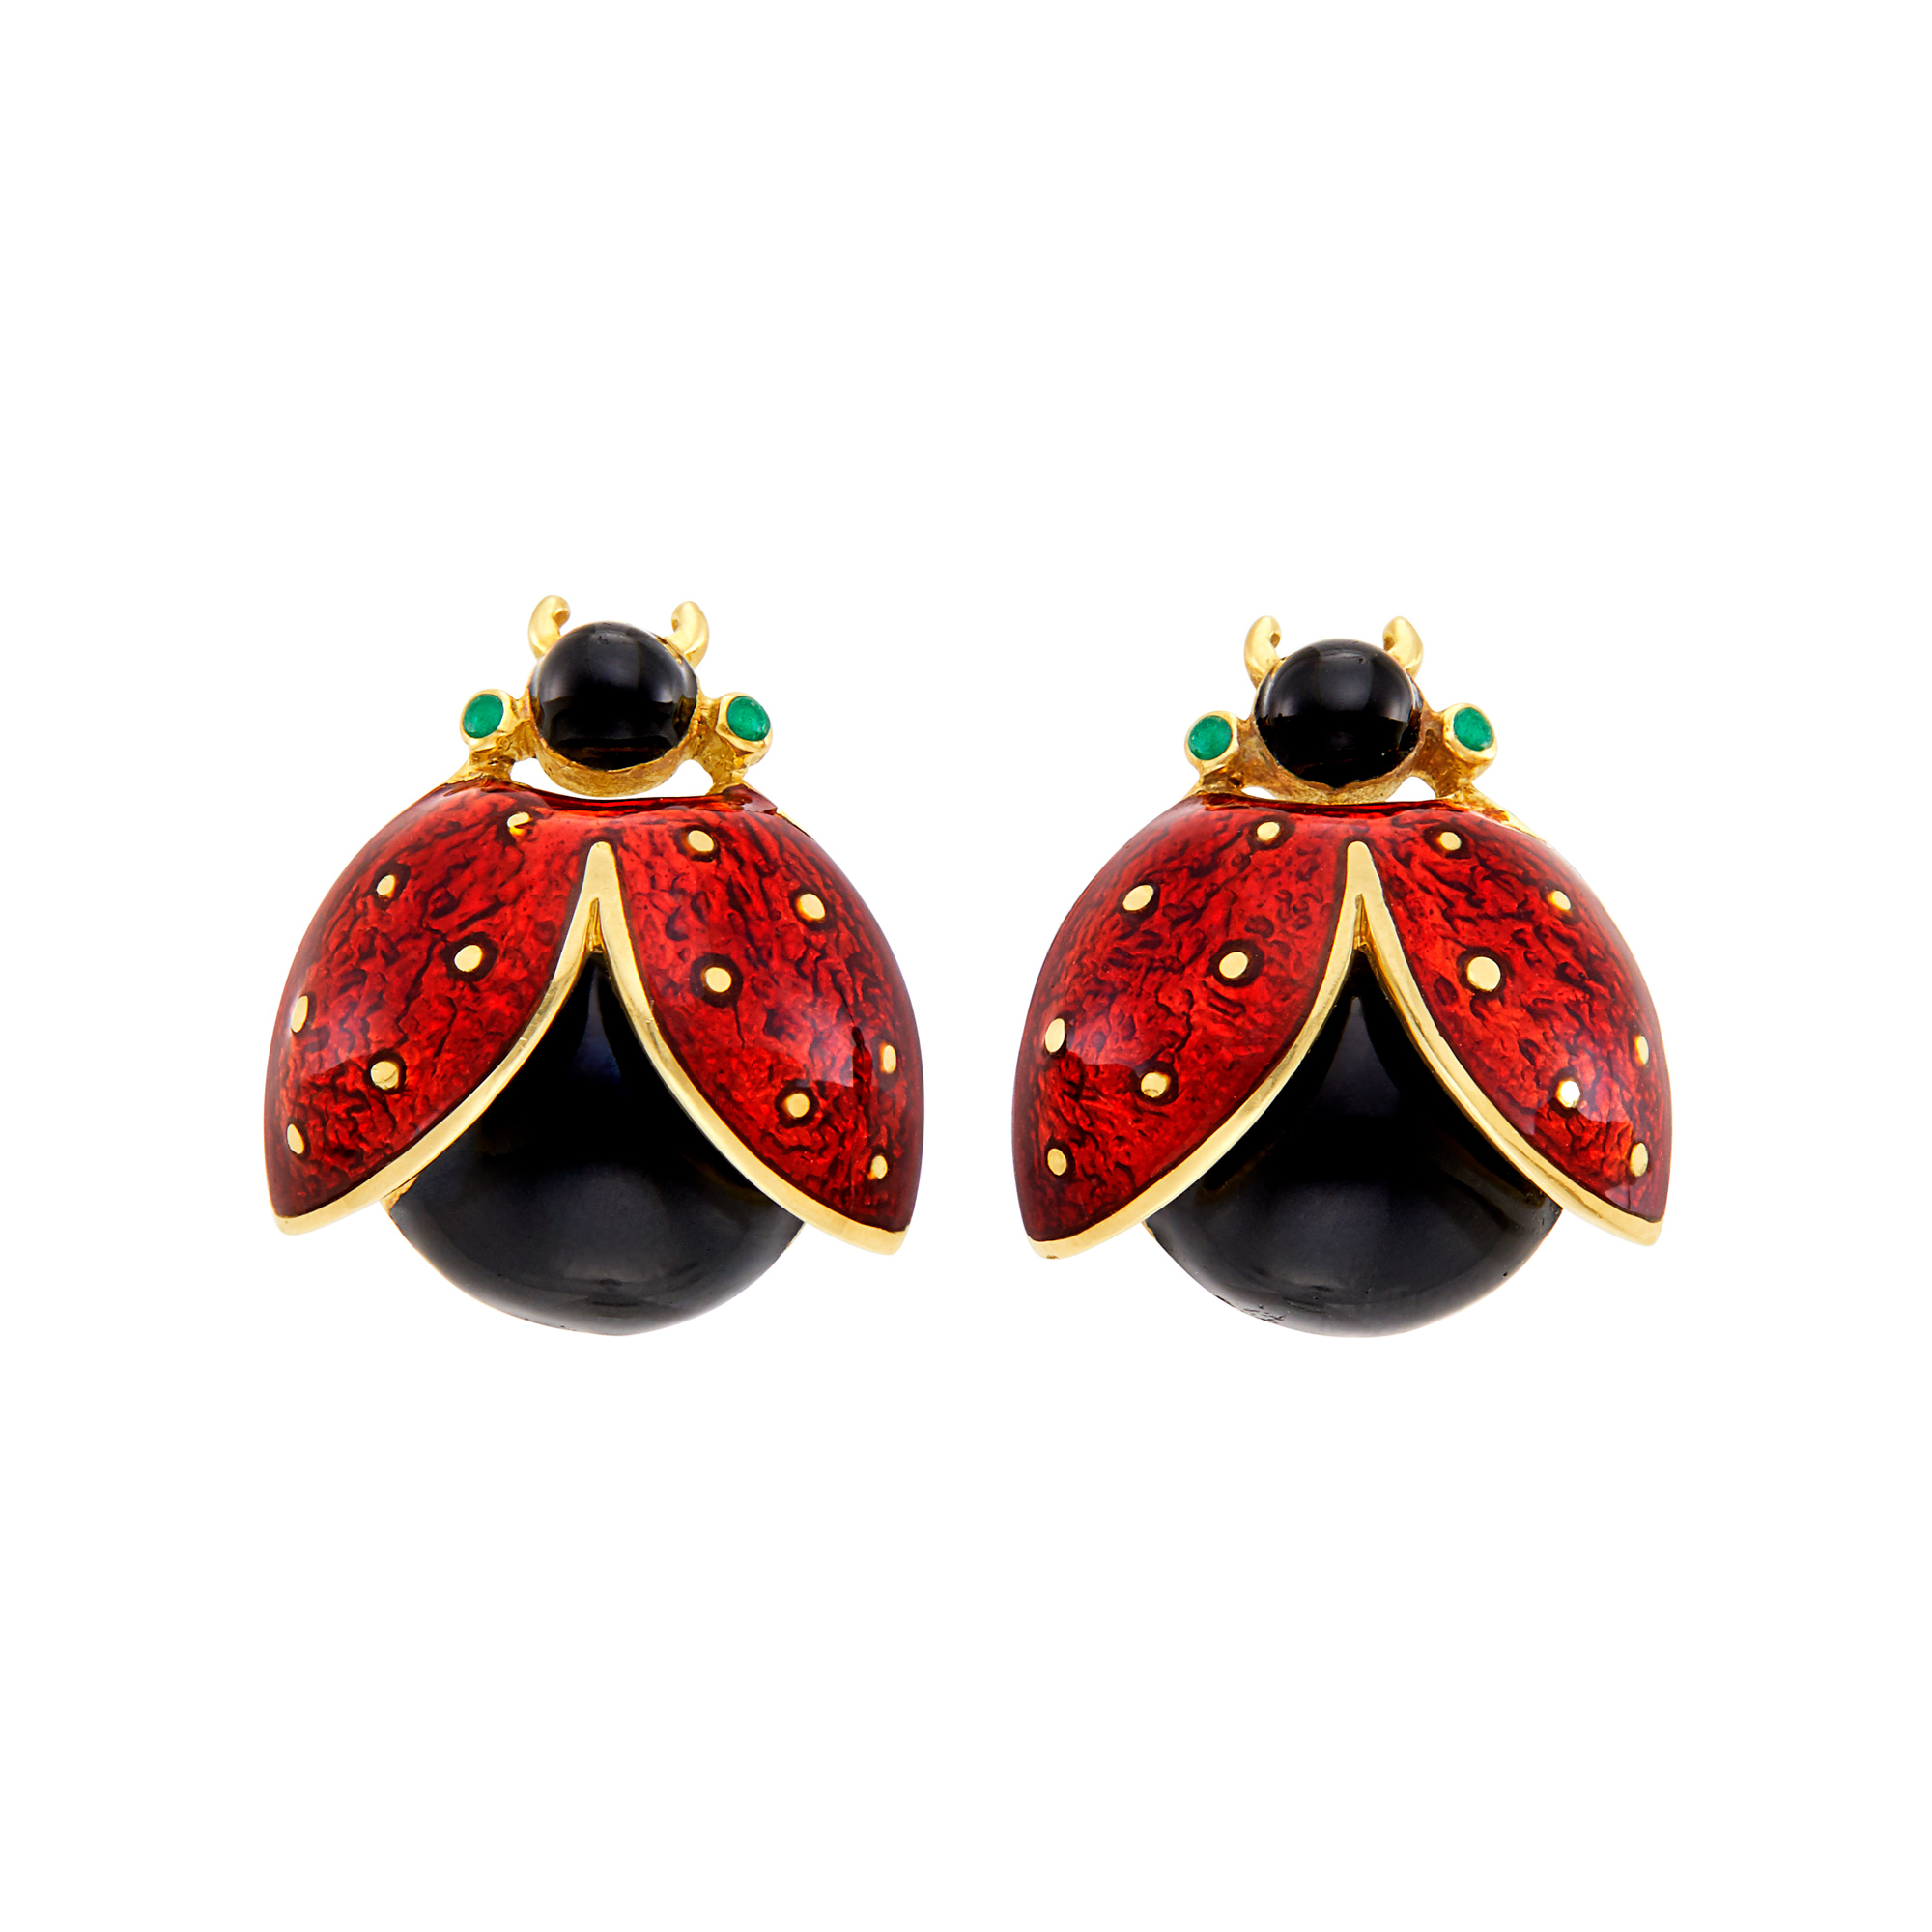 Lot image - Pair of Gold and Enamel Lady Bug Cufflinks, David Webb